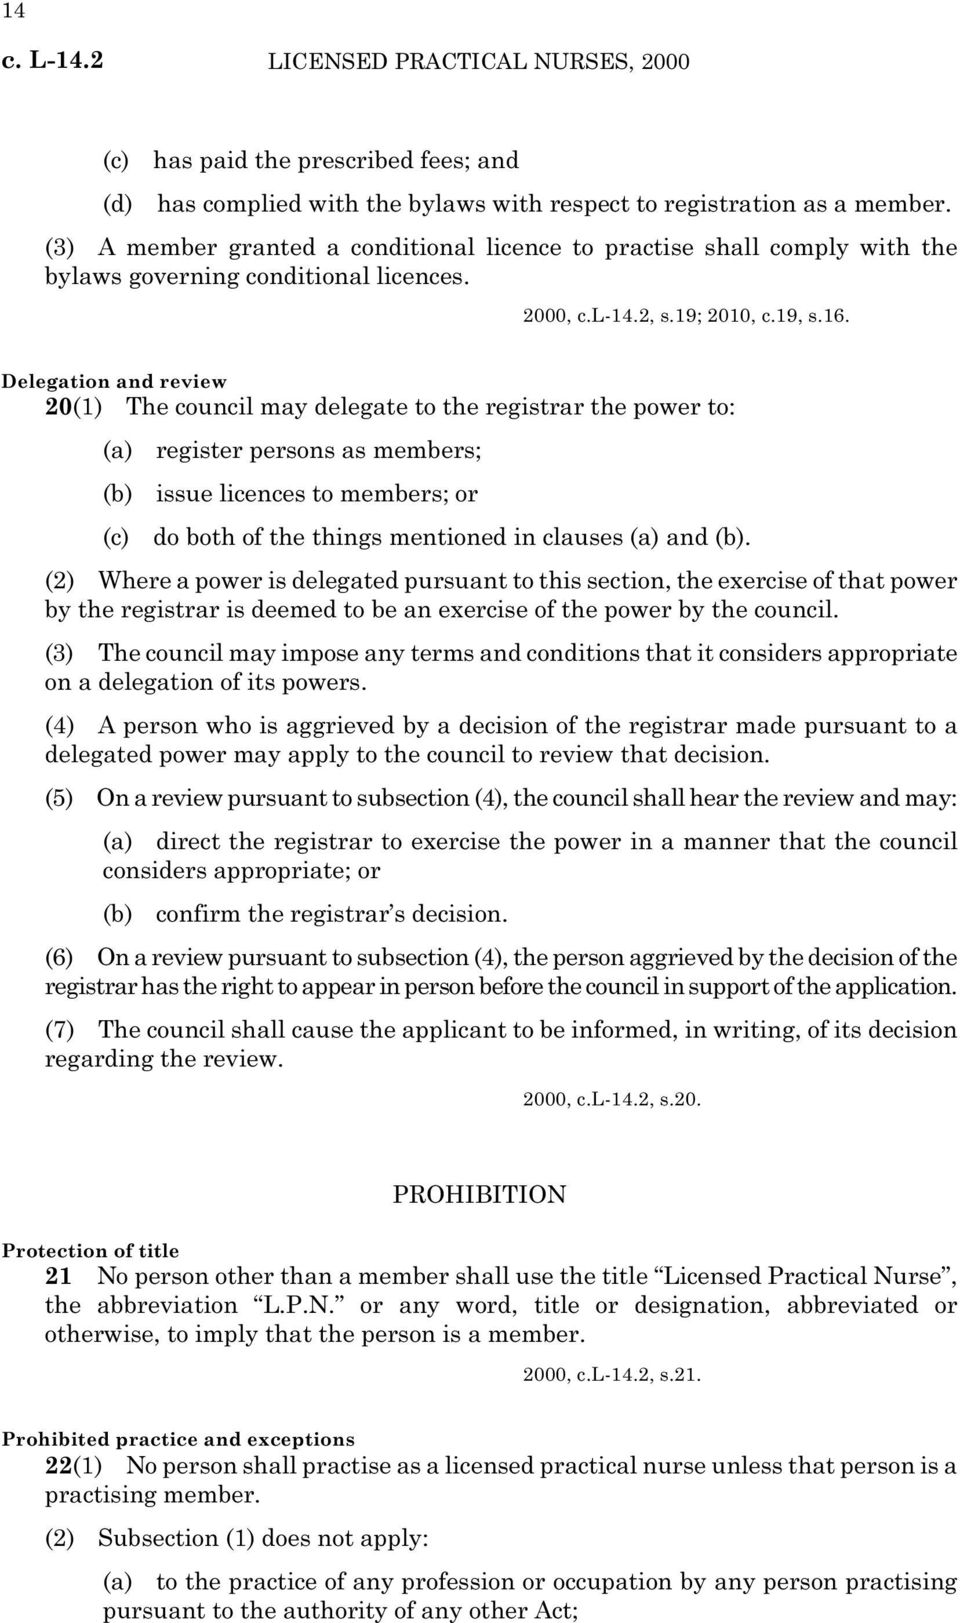 Delegation and review 20(1) The council may delegate to the registrar the power to: (a) register persons as members; (b) issue licences to members; or (c) do both of the things mentioned in clauses